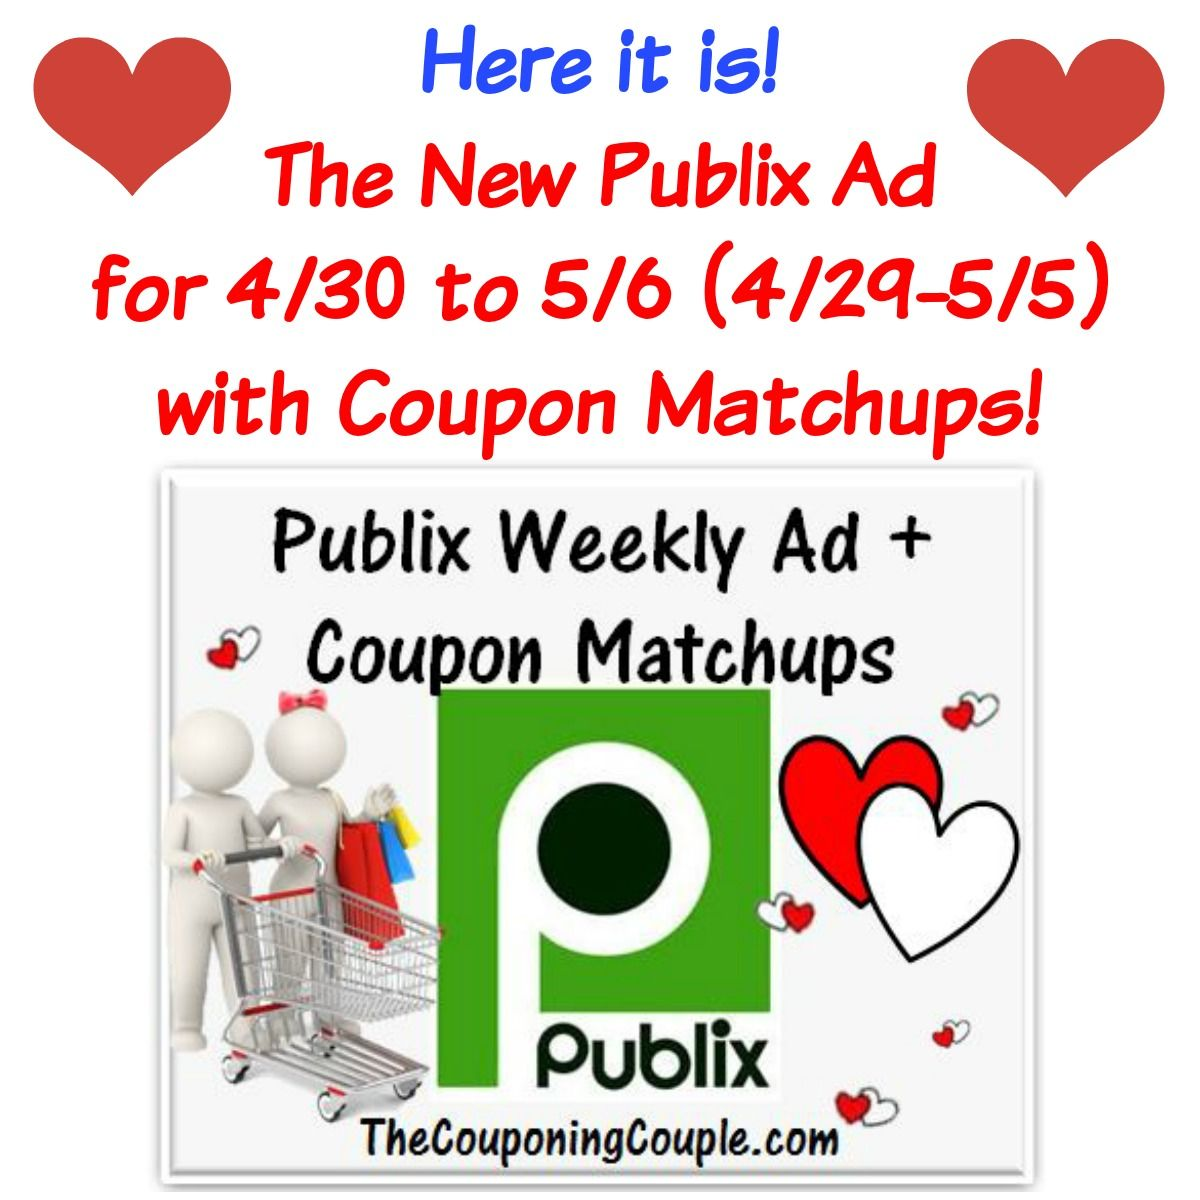 Publix Ad With Coupon Matchups For 4 30 To 5 6 15 4 29 5 5 Coupon Matchups Publix Ad Publix